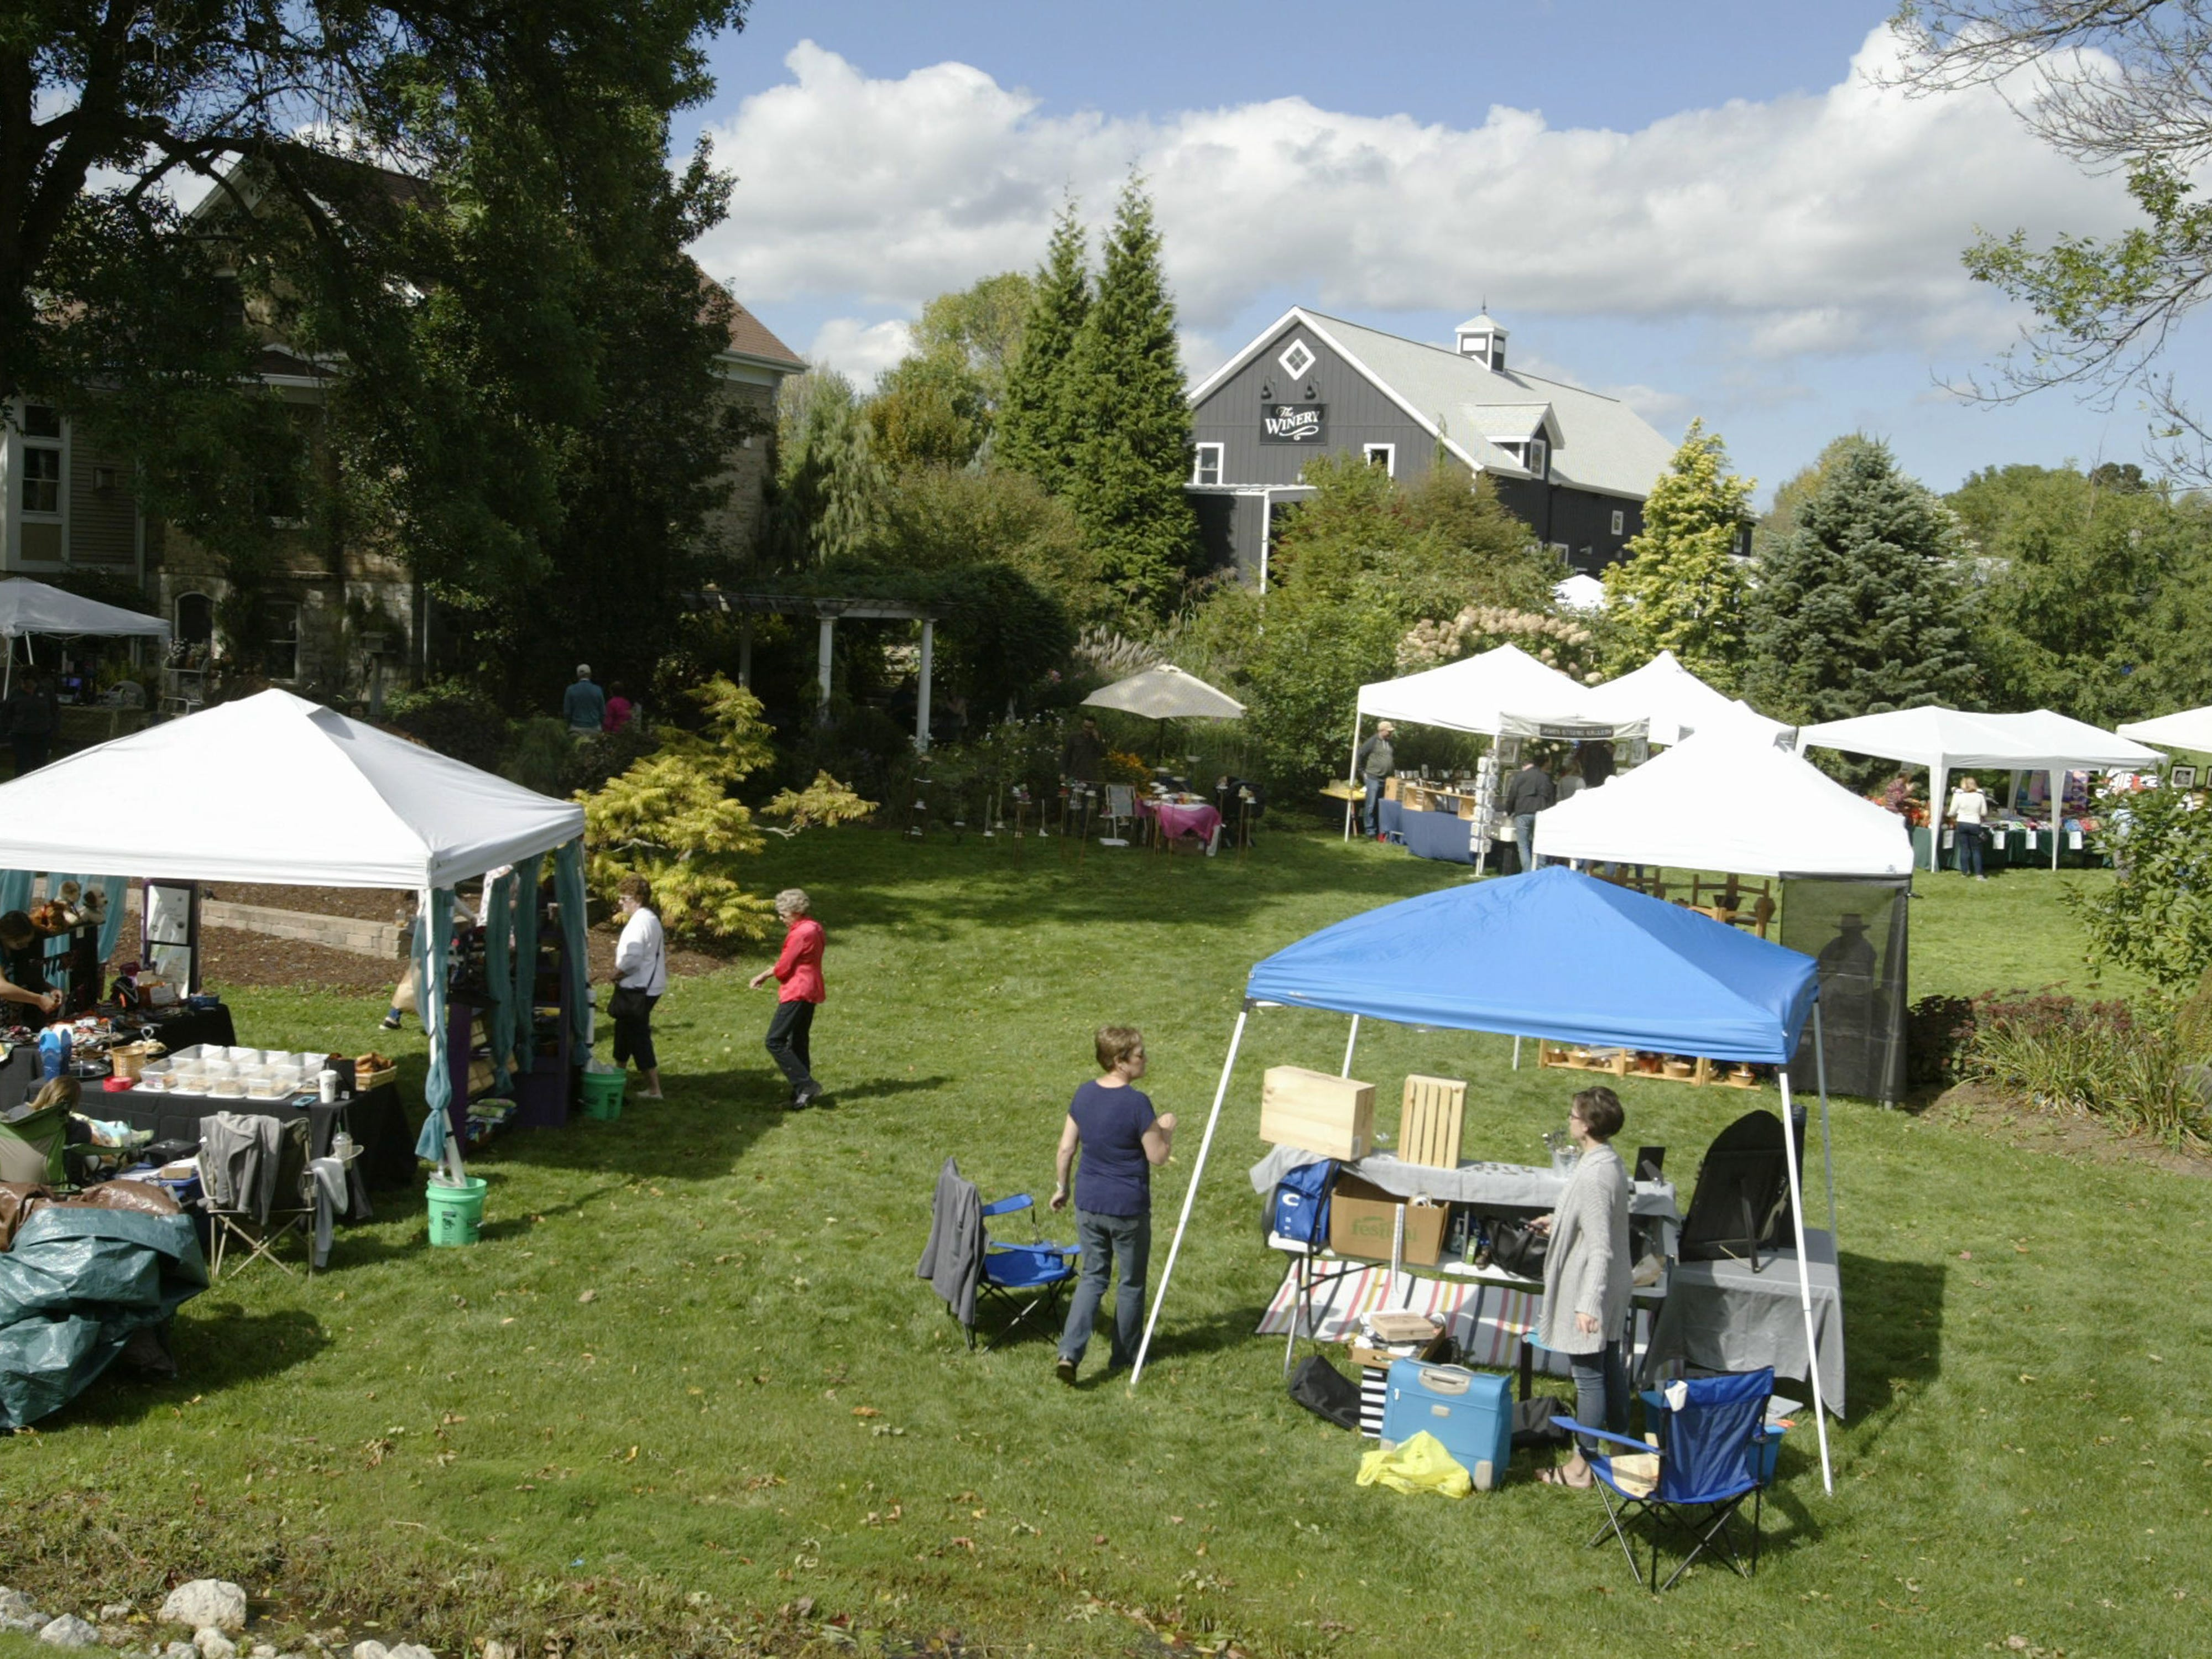 Vendors dot the yard during the Harvest Festival & Grape Stomp at The Blind Horse Restaurant and Winery, Saturday, September 22, 2018, in Kohler, Wis.